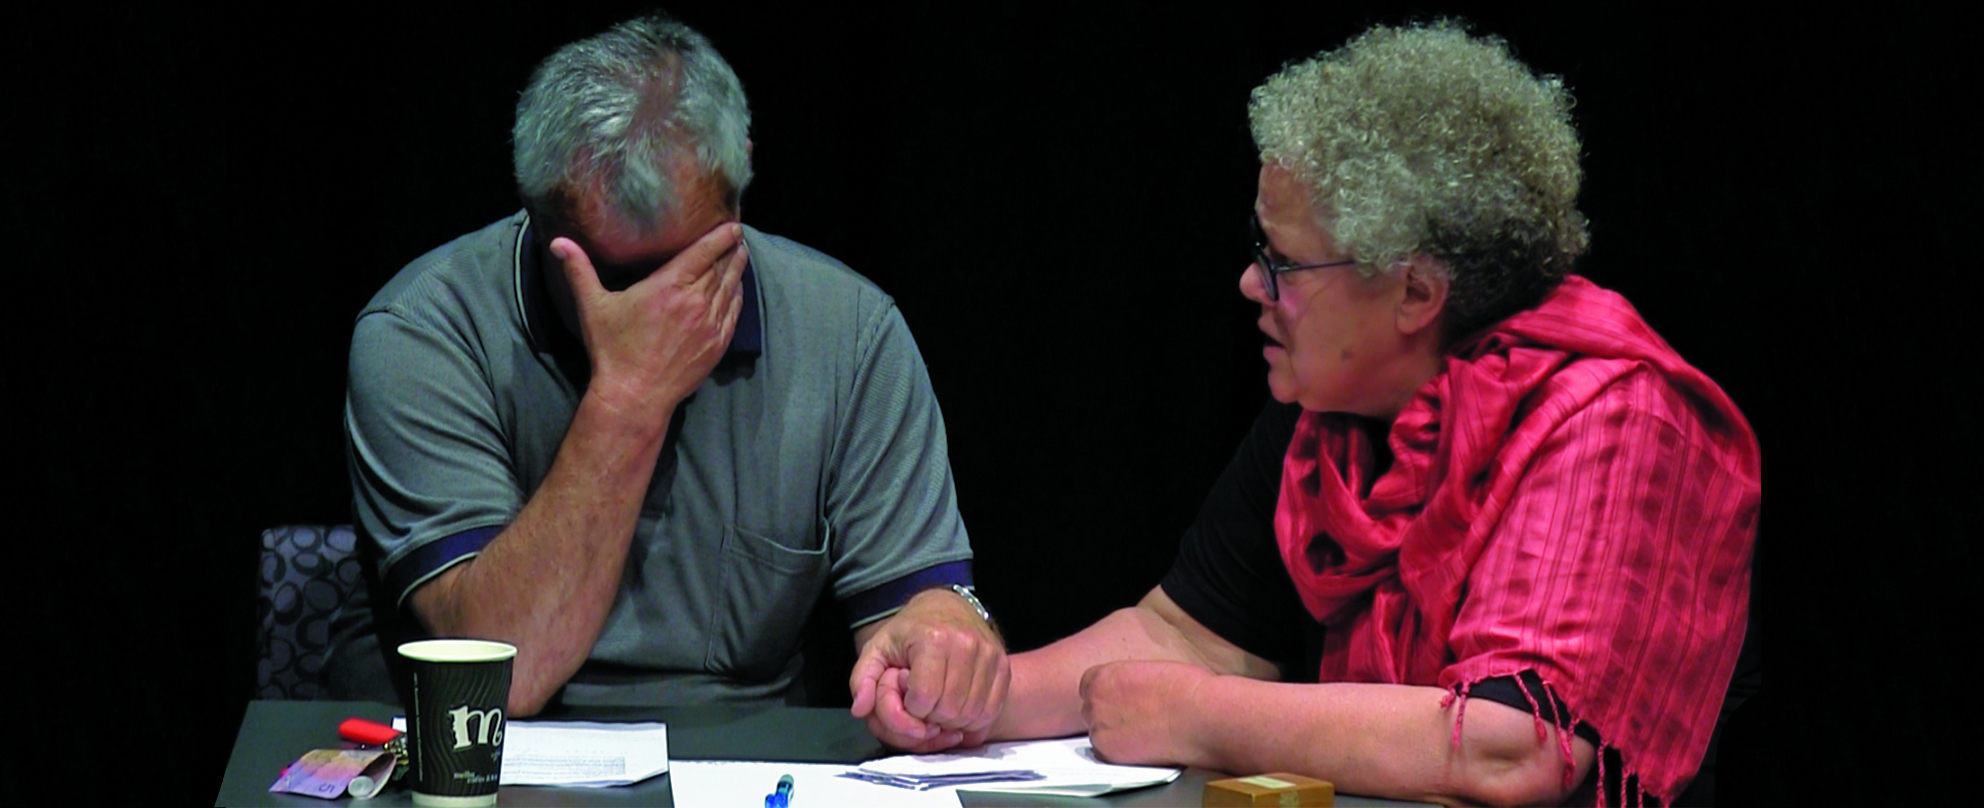 A woman sits at a table comforting a distressed man in a scene from the theatre performance of 'Three Sides of the Coin'